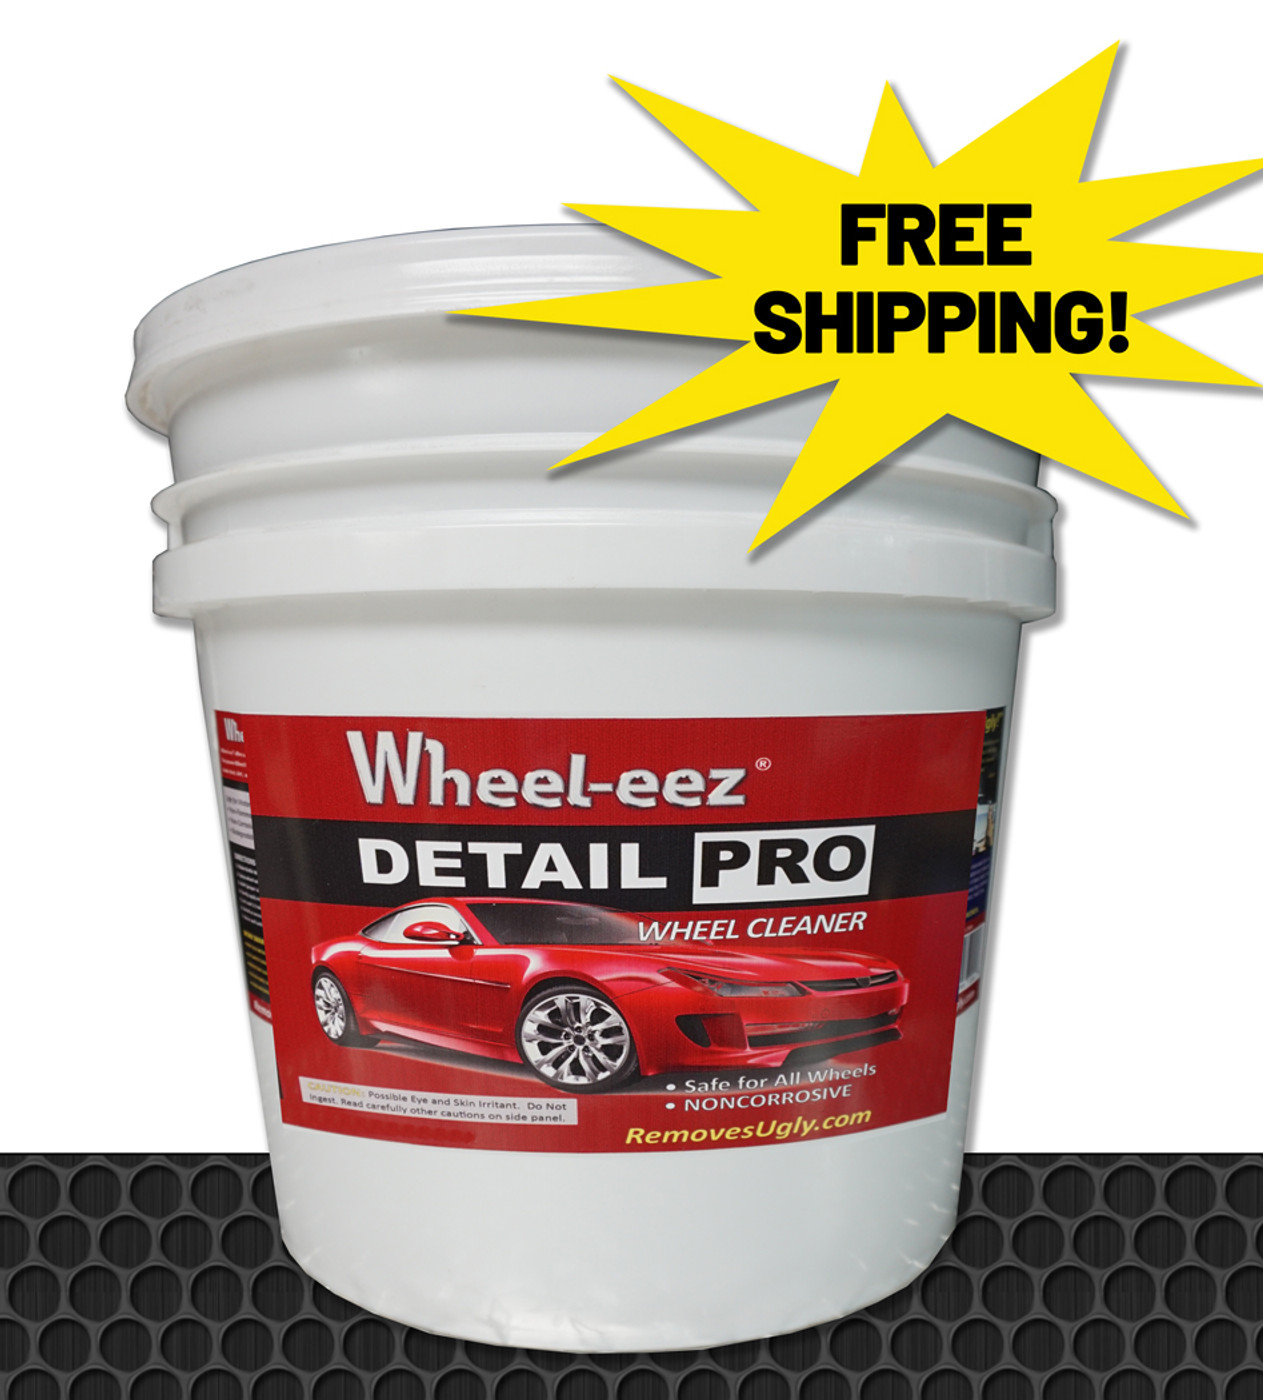 Wheel-eez® Detail Pro™ wheel cleaner offers the best in class wheel cleaner for professional detailers.  Detail Pro™ can be used with ALL Wheel types.  It is noncorrosive and safe to use, along with being biodegradable.  No more relying on harsh chemicals for your tough to clean wheels.    Just spray first with water, then mist Wheel-eez® on wheel.  Leave on for a few minutes for tough greasy dust and grime.  Agitate as needed and rinse away for a clean shiny wheel.